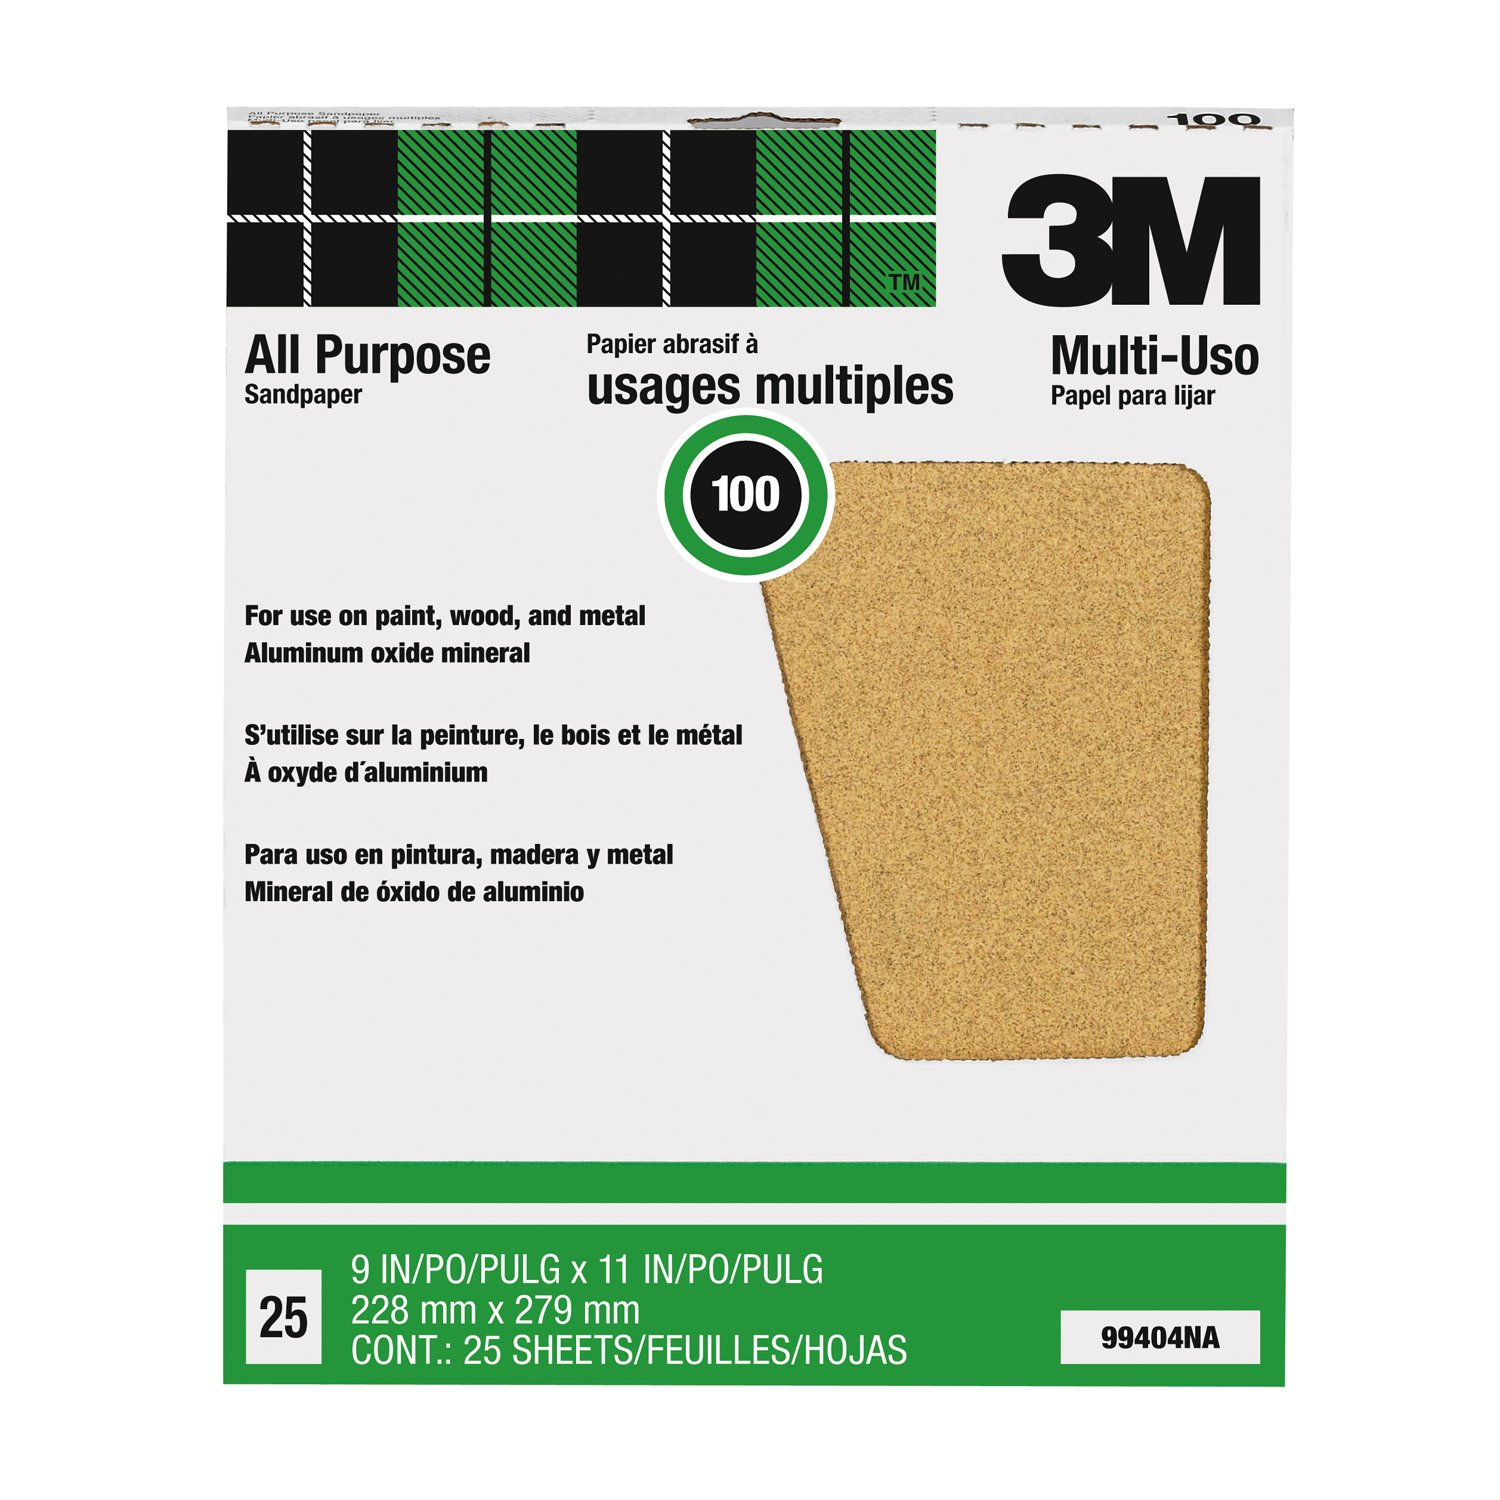 3M Pro-Pak 99404NA, Aluminum Oxide Sheets for Paint and Rust Removal, 9-Inch by 11-Inch, 100C